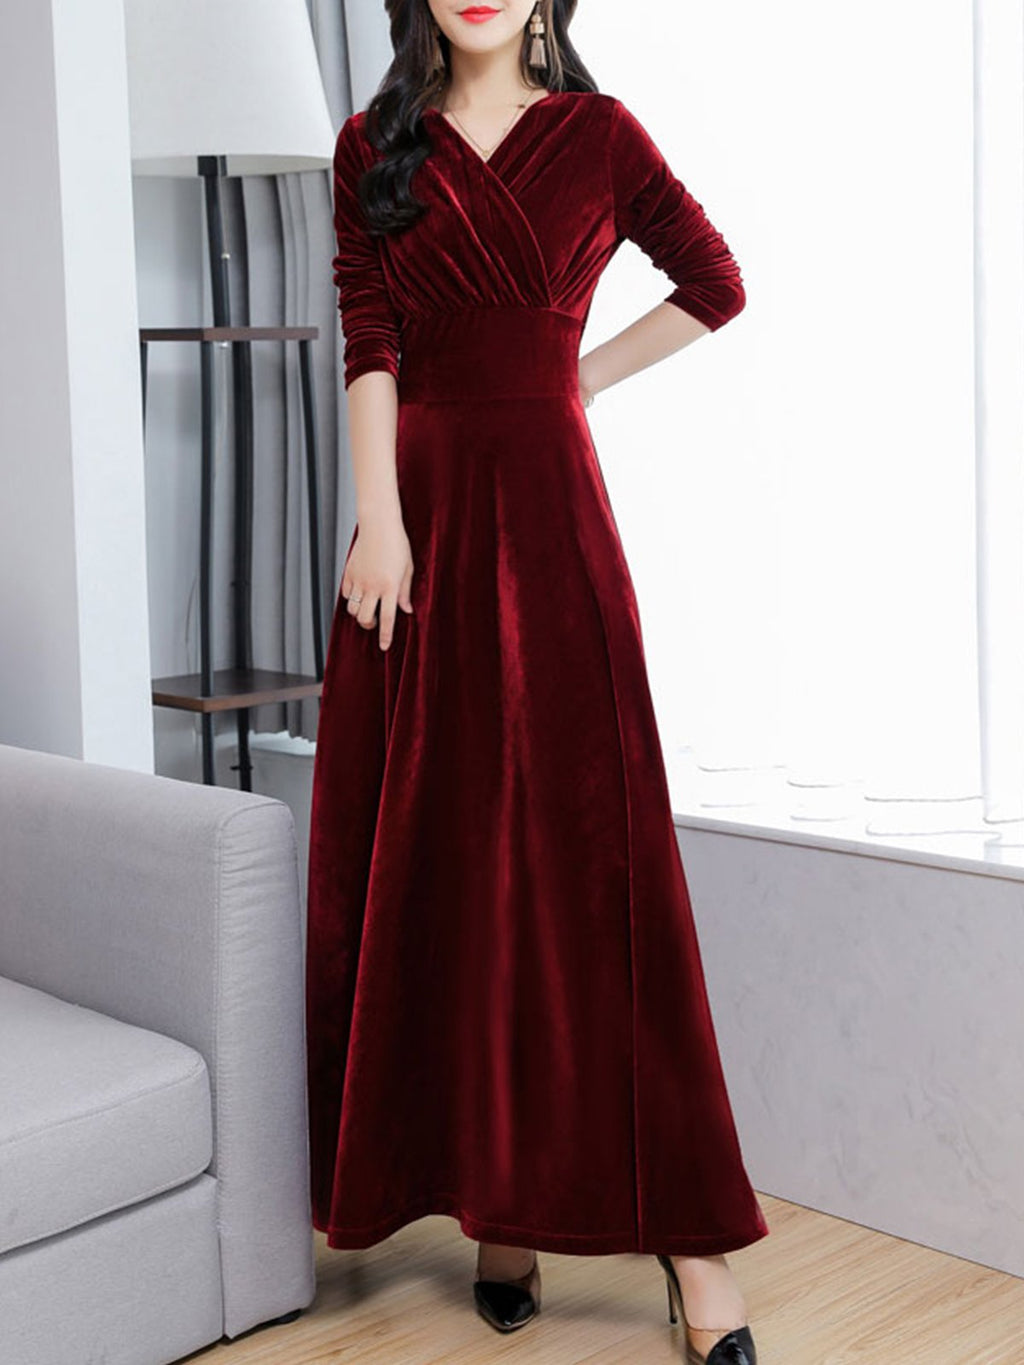 Surplice Neck Women Dresses Swing Elegant Maxi Dresses